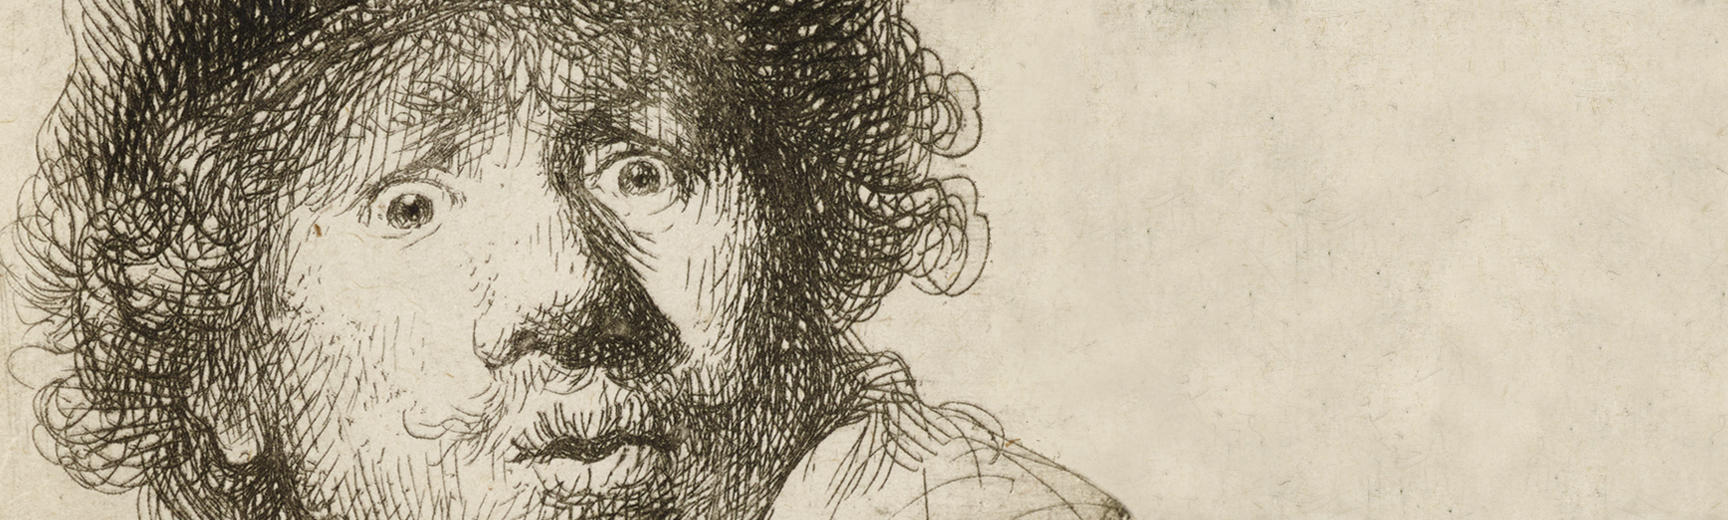 Detail from an etching of a self portrait of a young Rembrandt, made 1630